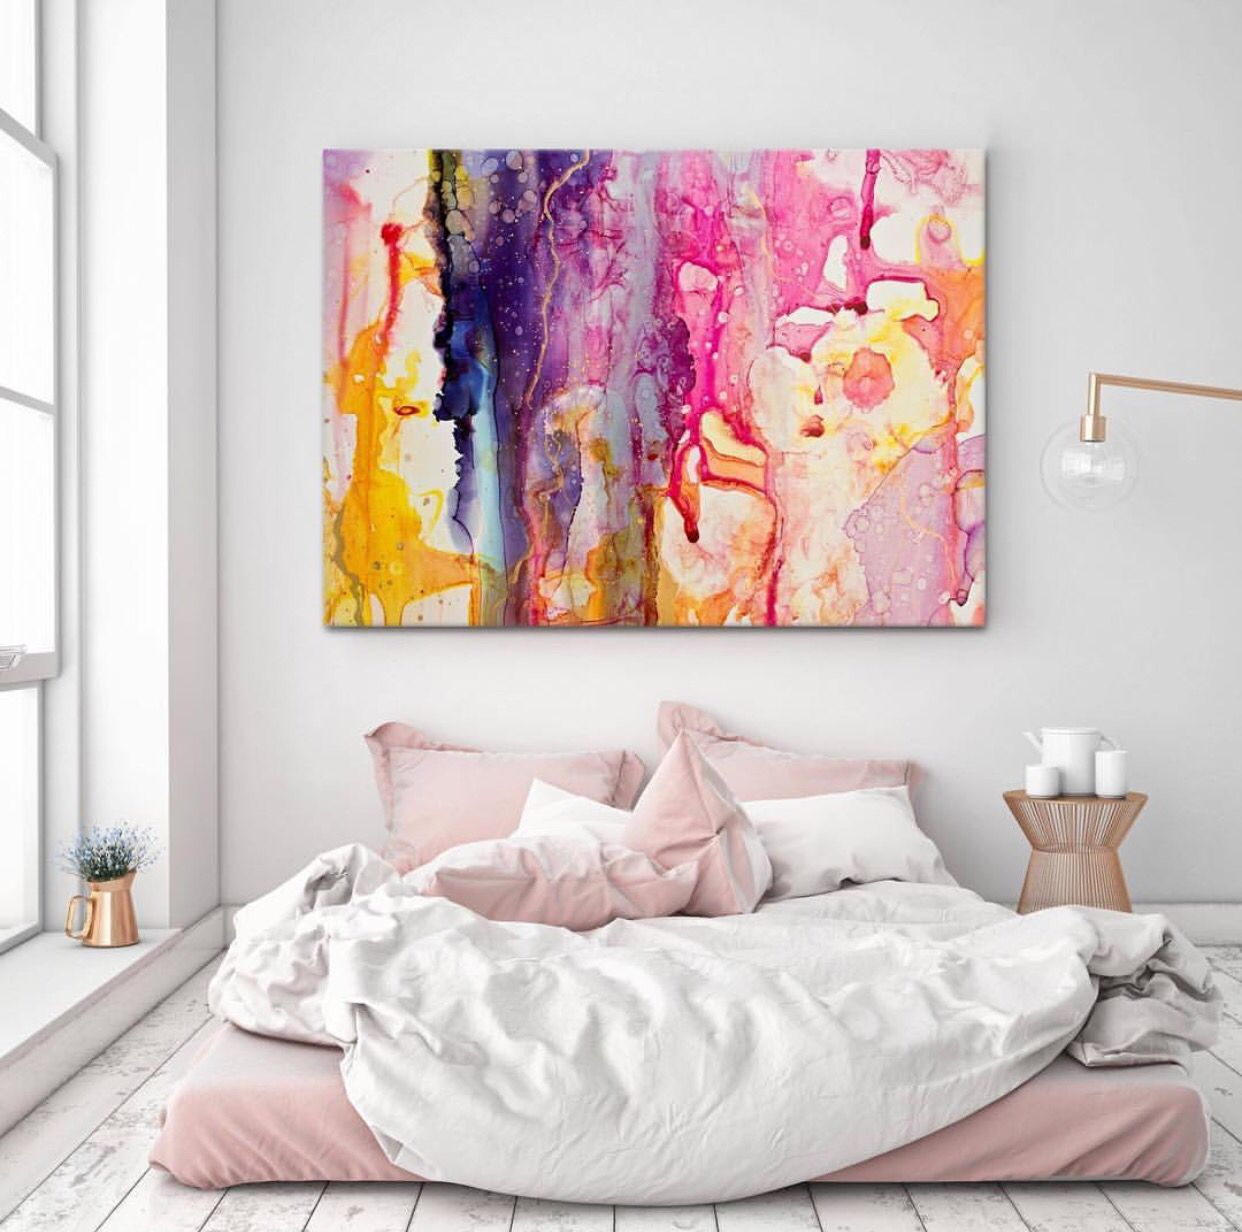 Artwork above bed on floor Abstract themed bedroom … Art